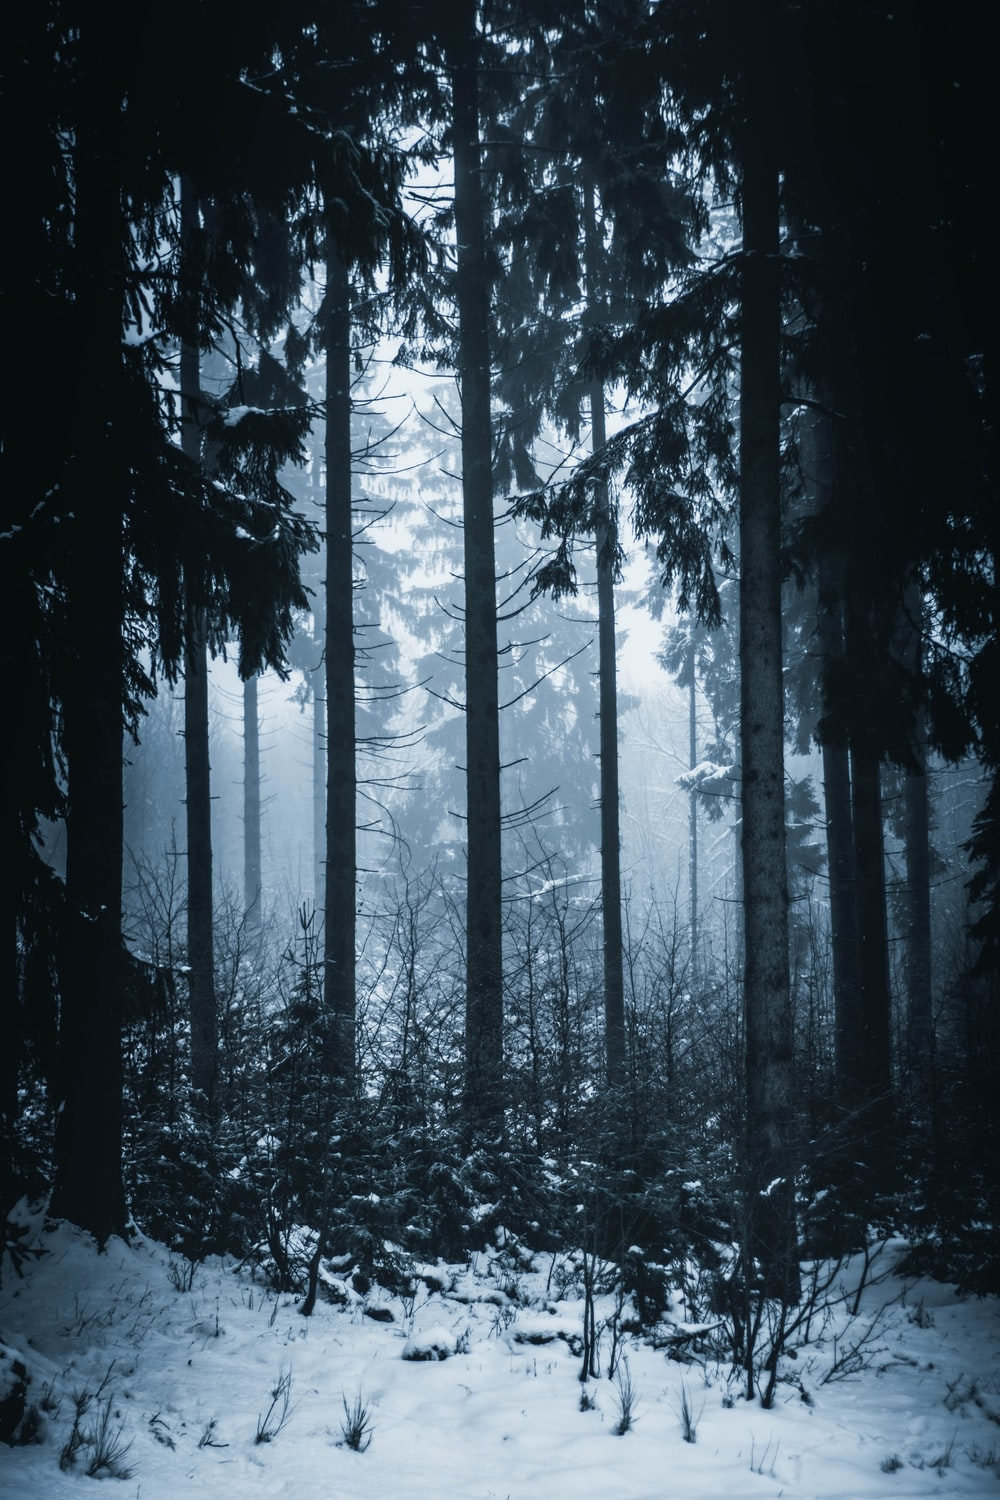 snowy woods with fogs